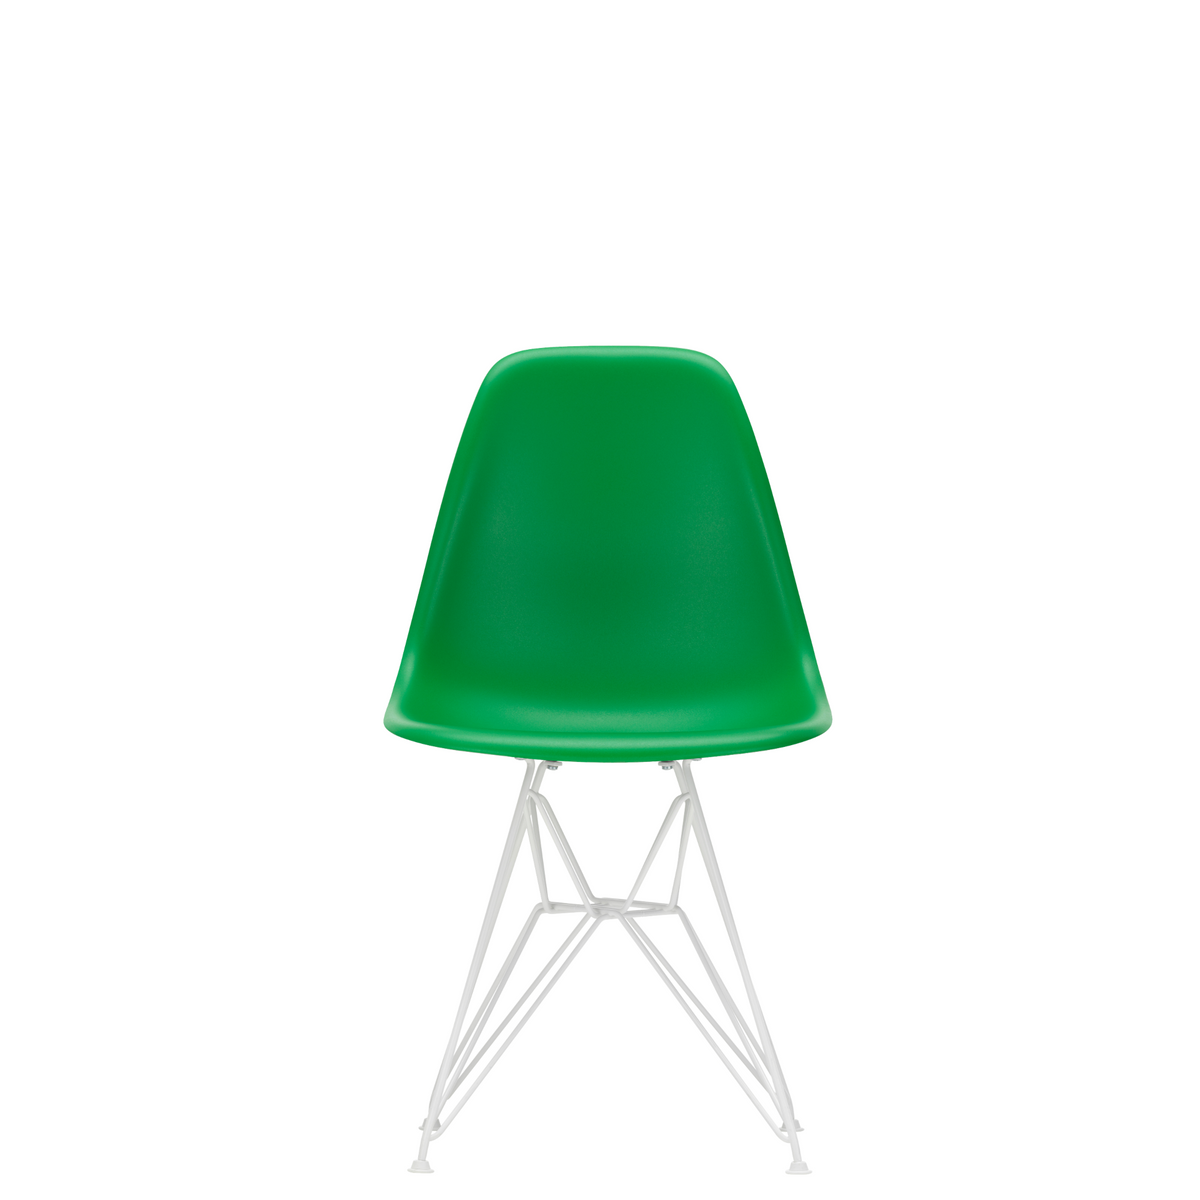 Vitra Eames Plastic Side Chair DSR Powder Coated for Outdoor Use. Green Shell, White Powdercoated Base